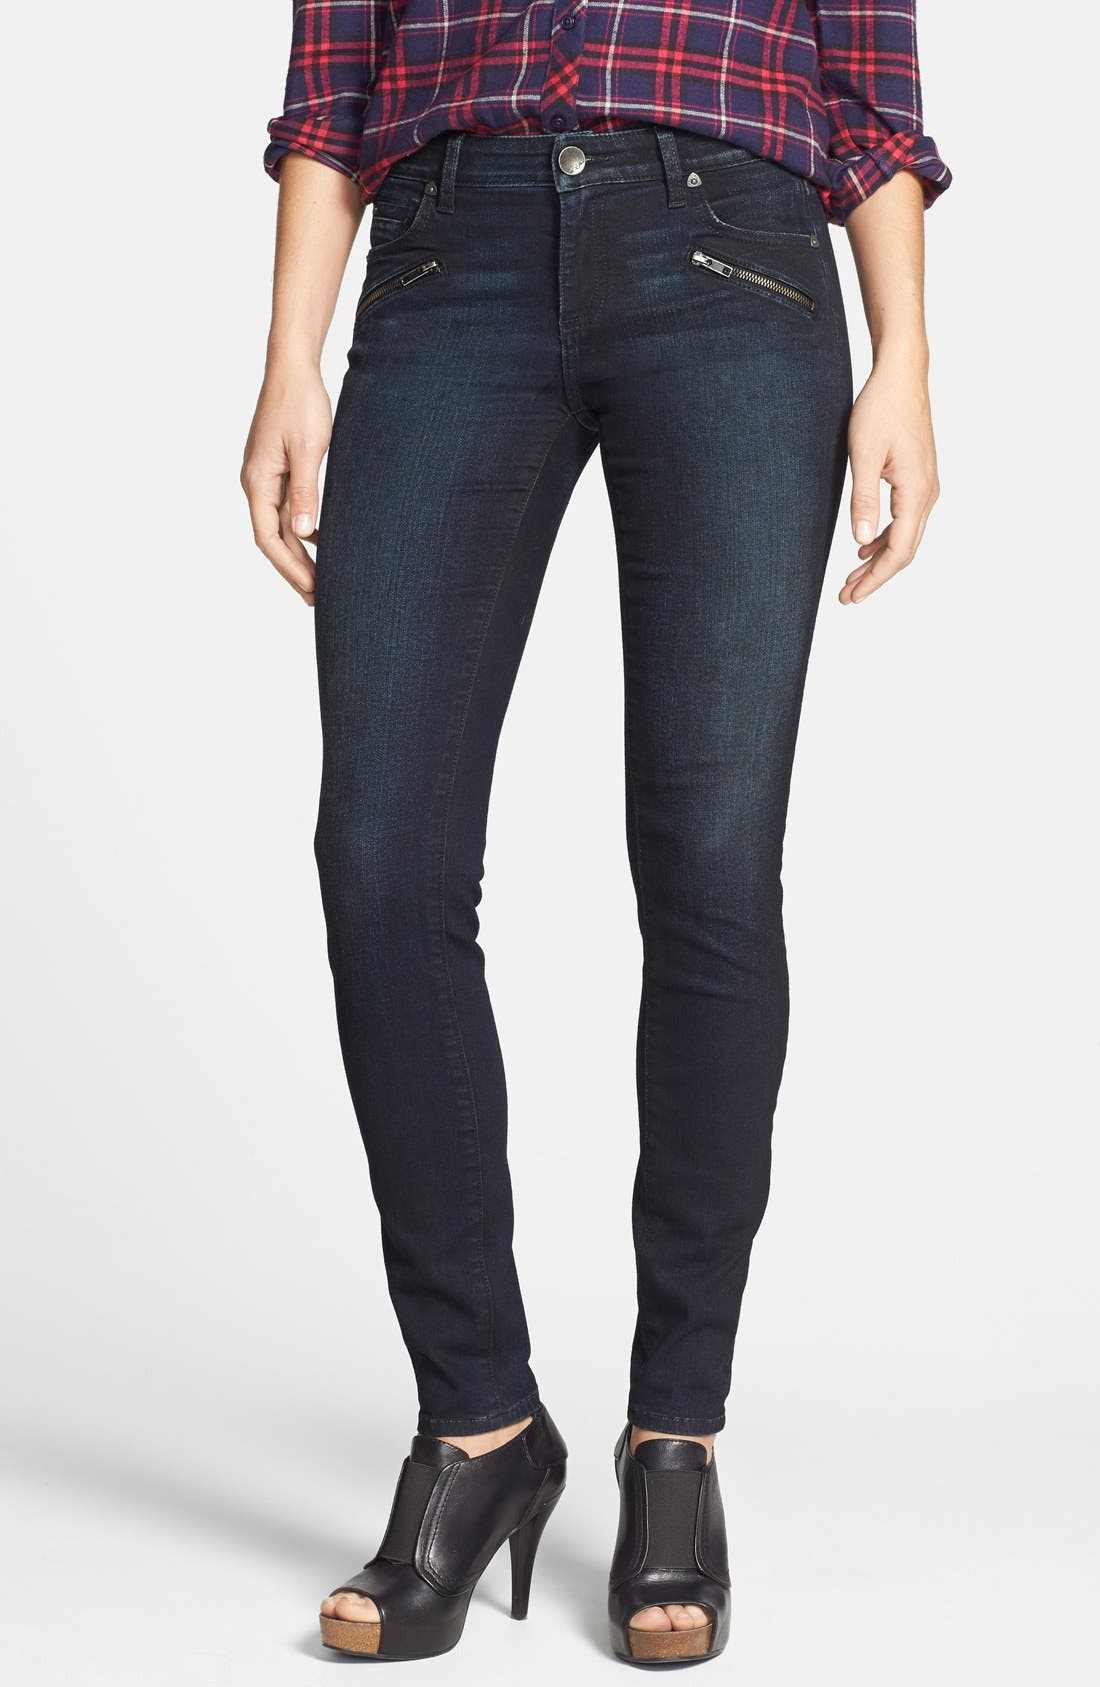 Alternate Image 1 Selected - KUT from the Kloth 'Diana' Zip Detail Stretch Skinny Jeans (Privileged)